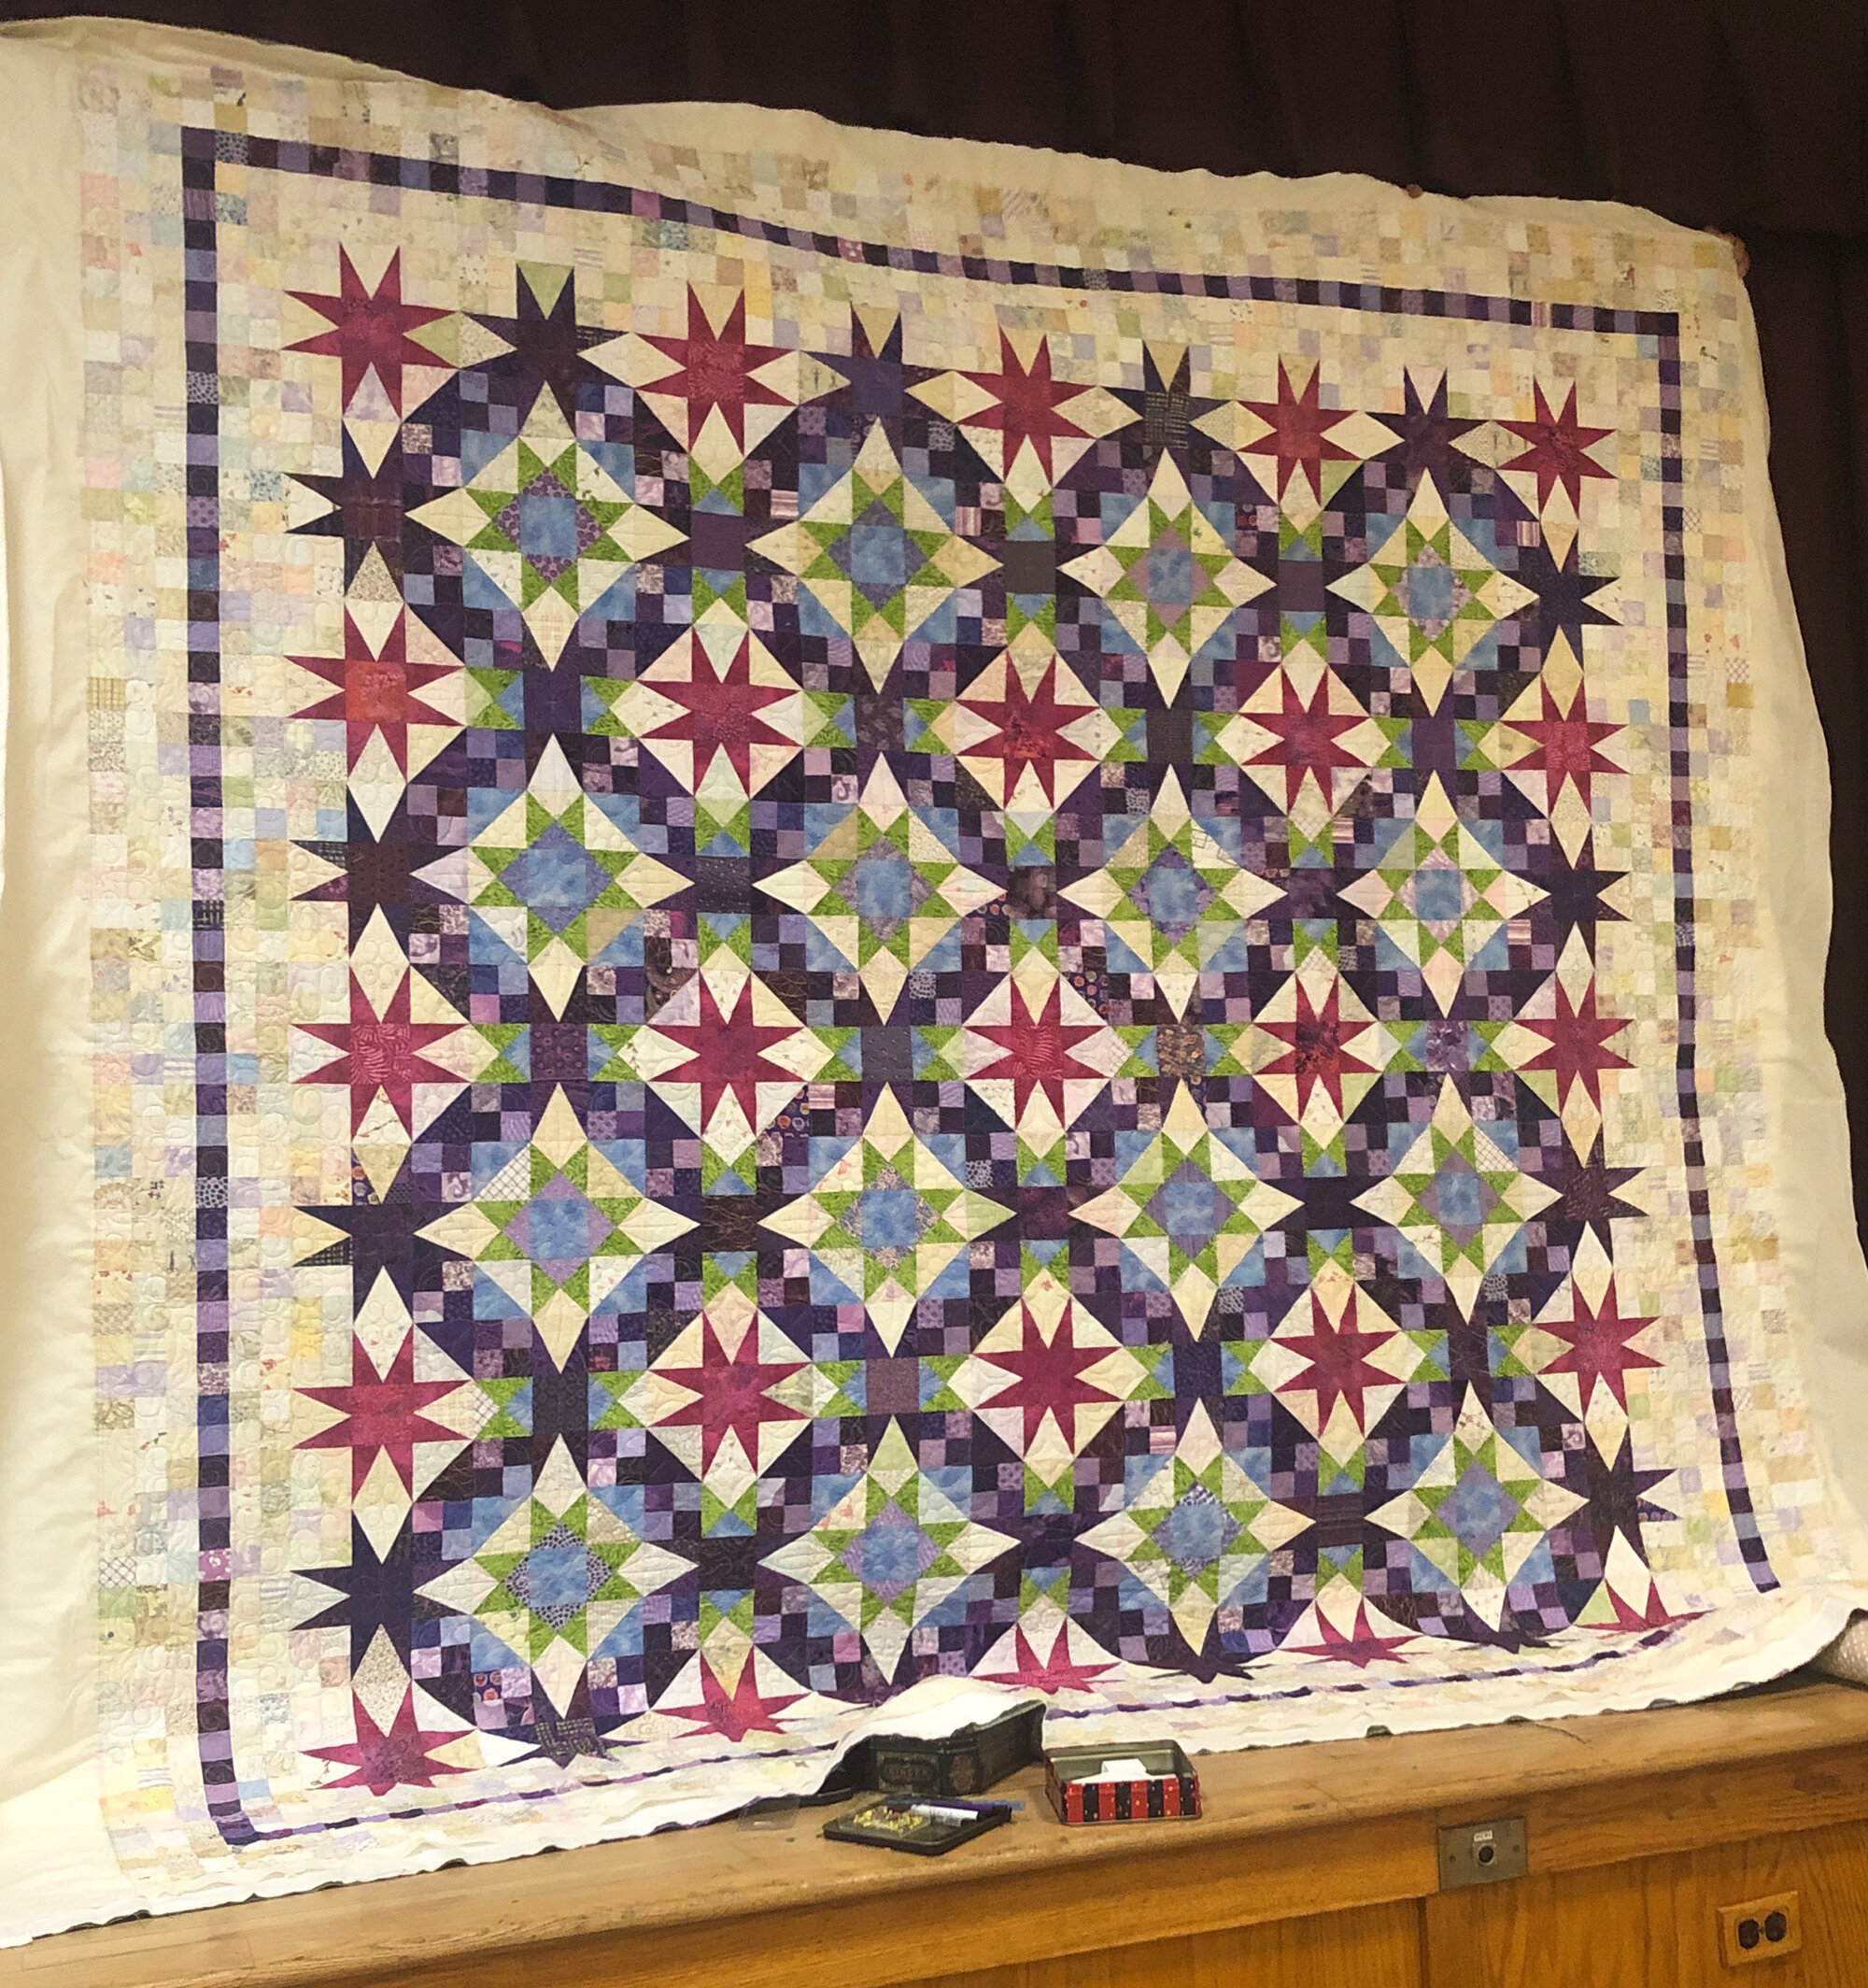 Chris Janove, En Provence, a @quiltville_bonnie mystery quilt. I changed the coloration a bit and added my own edge/border.